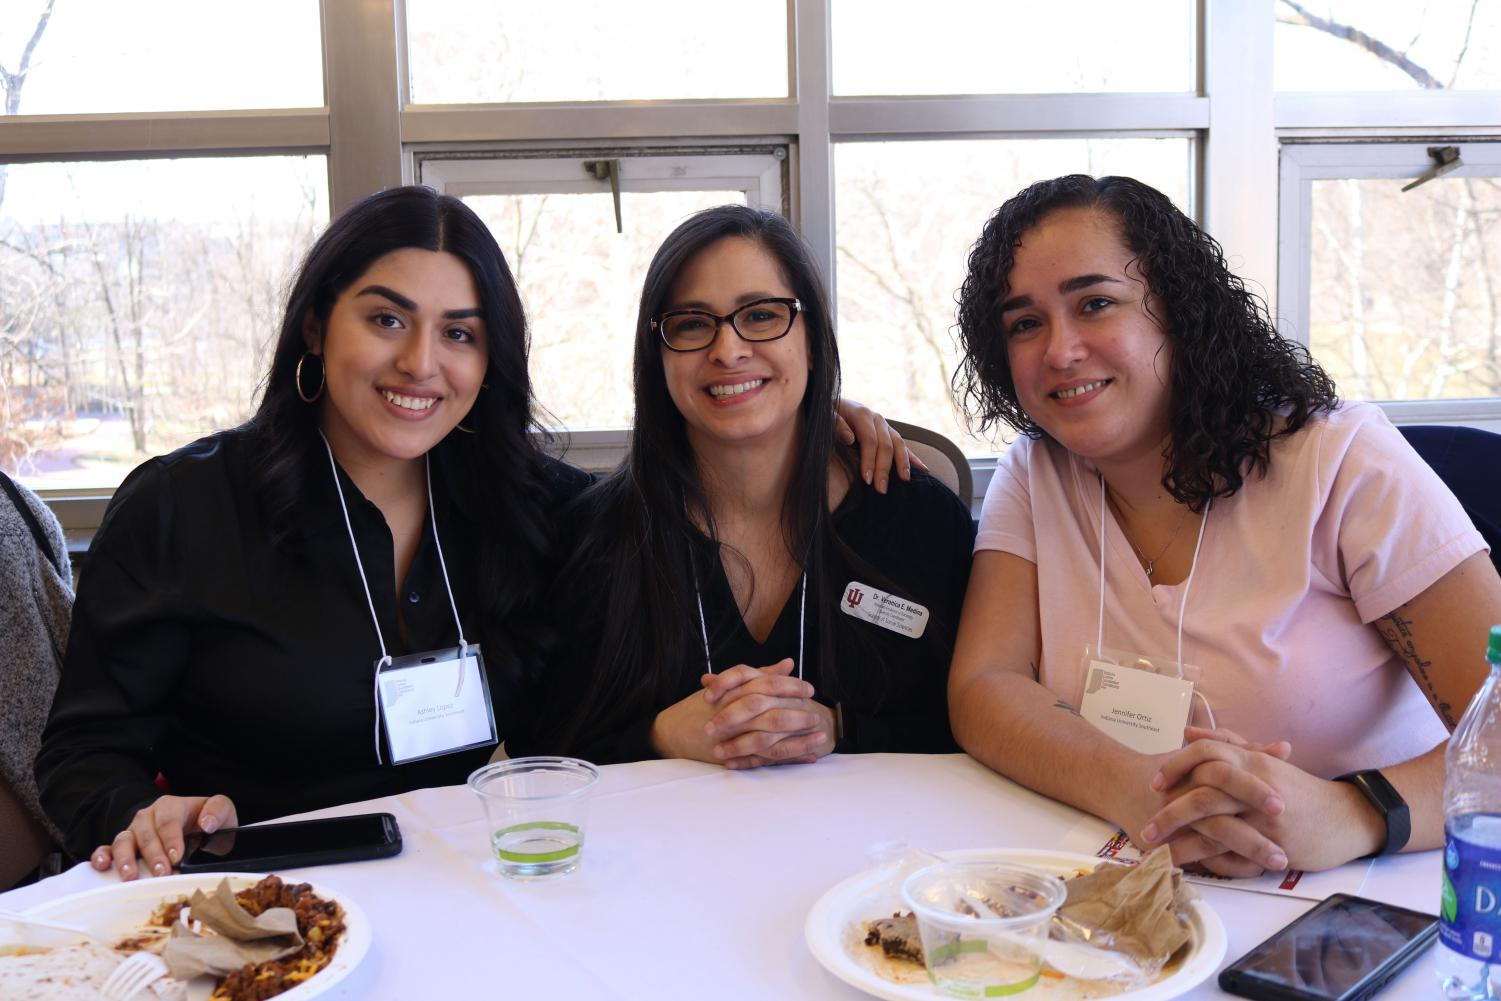 From left to right: ILLC co-chair Ashley Lopez, Veronica Medina, and Jennifer Ortiz.